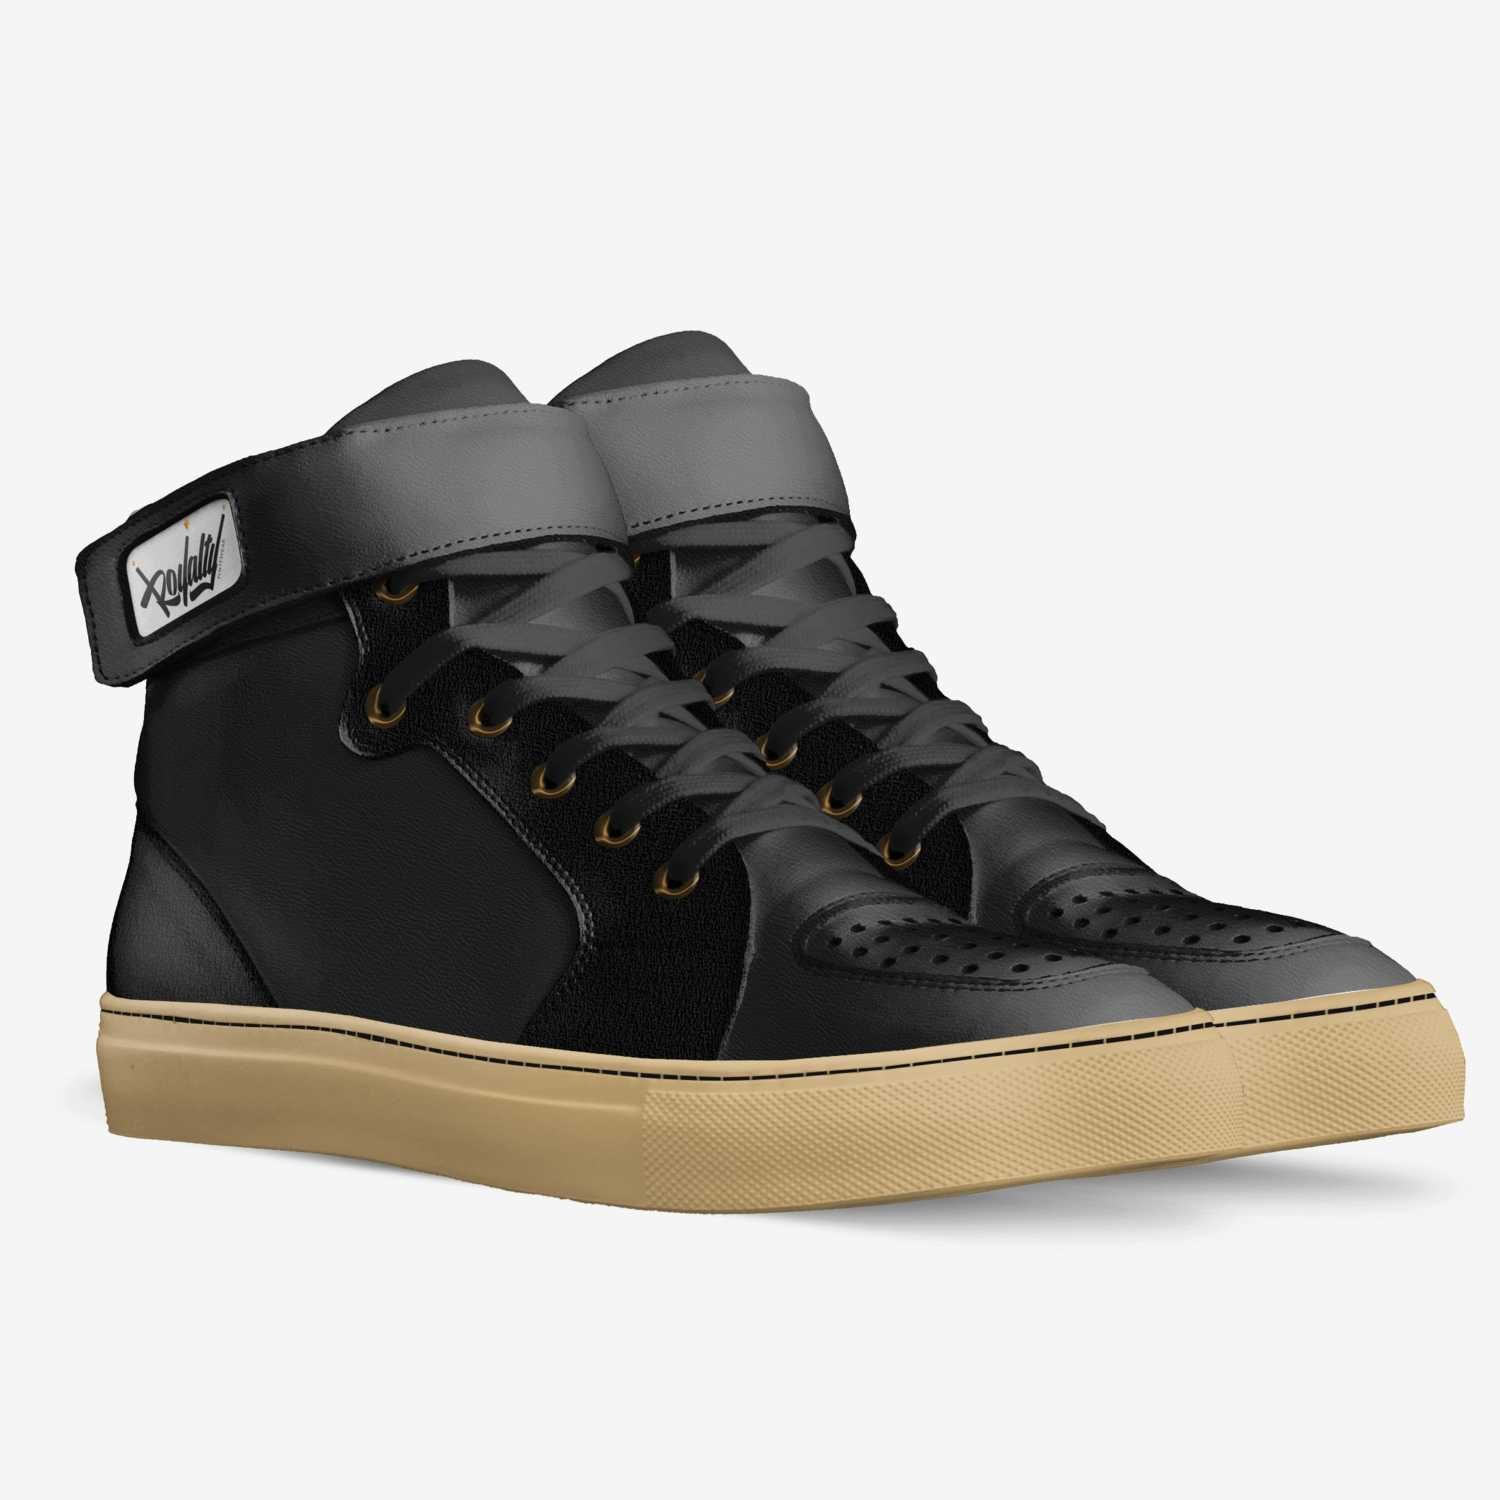 40fa73f44eb Royalty Footwear custom made in Italy shoes by Anton Mcarthur